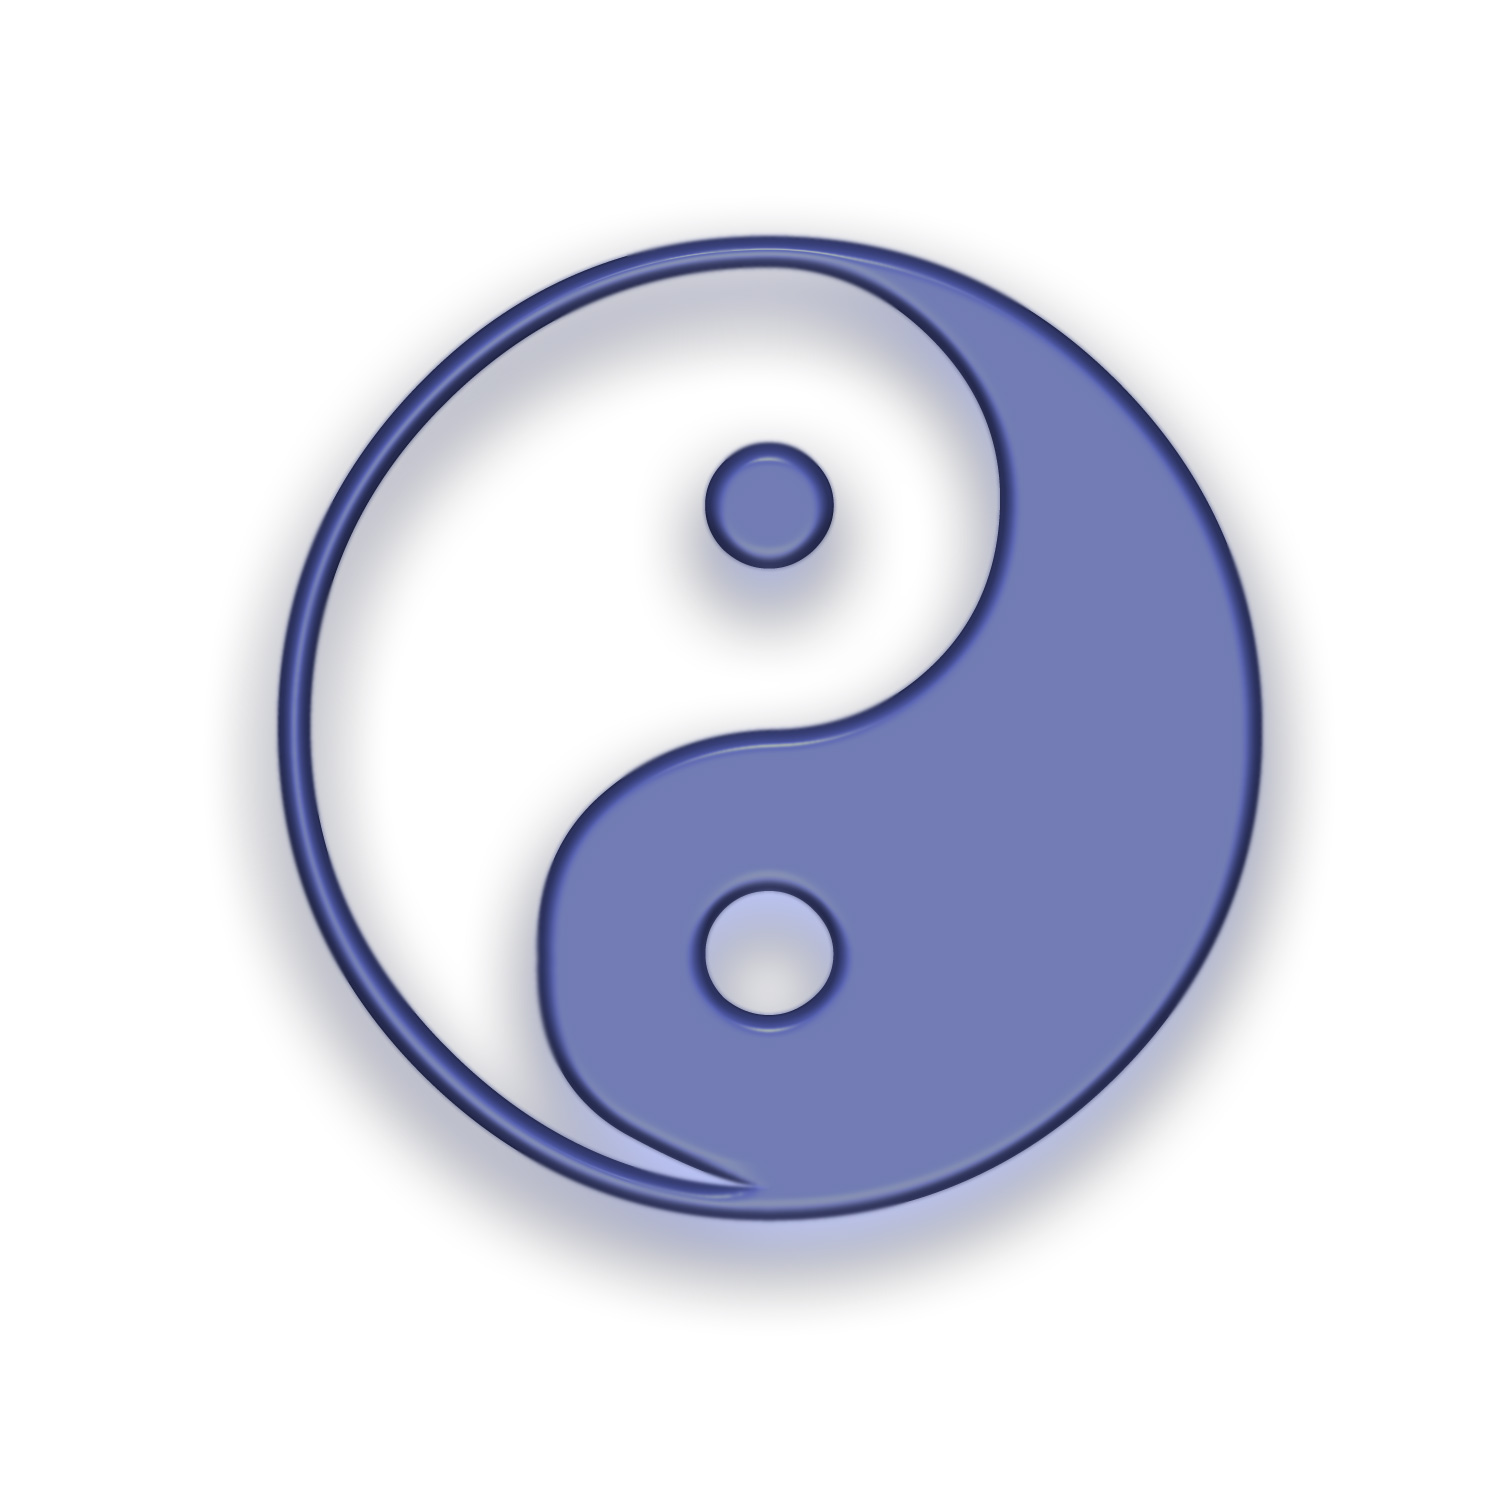 Yin and Yang Symbol Wallpaper